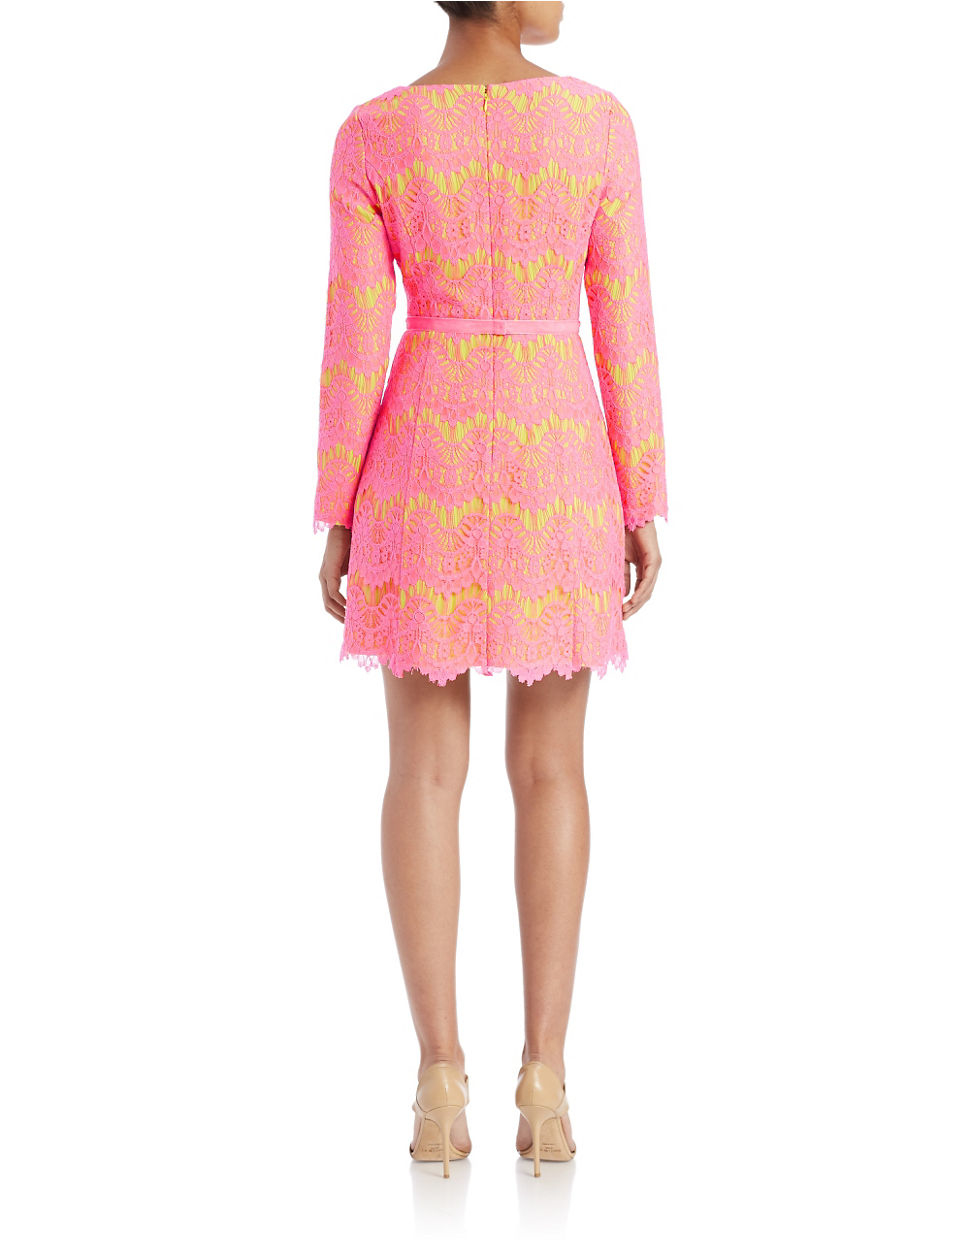 connection belted lace shift dress in pink acid